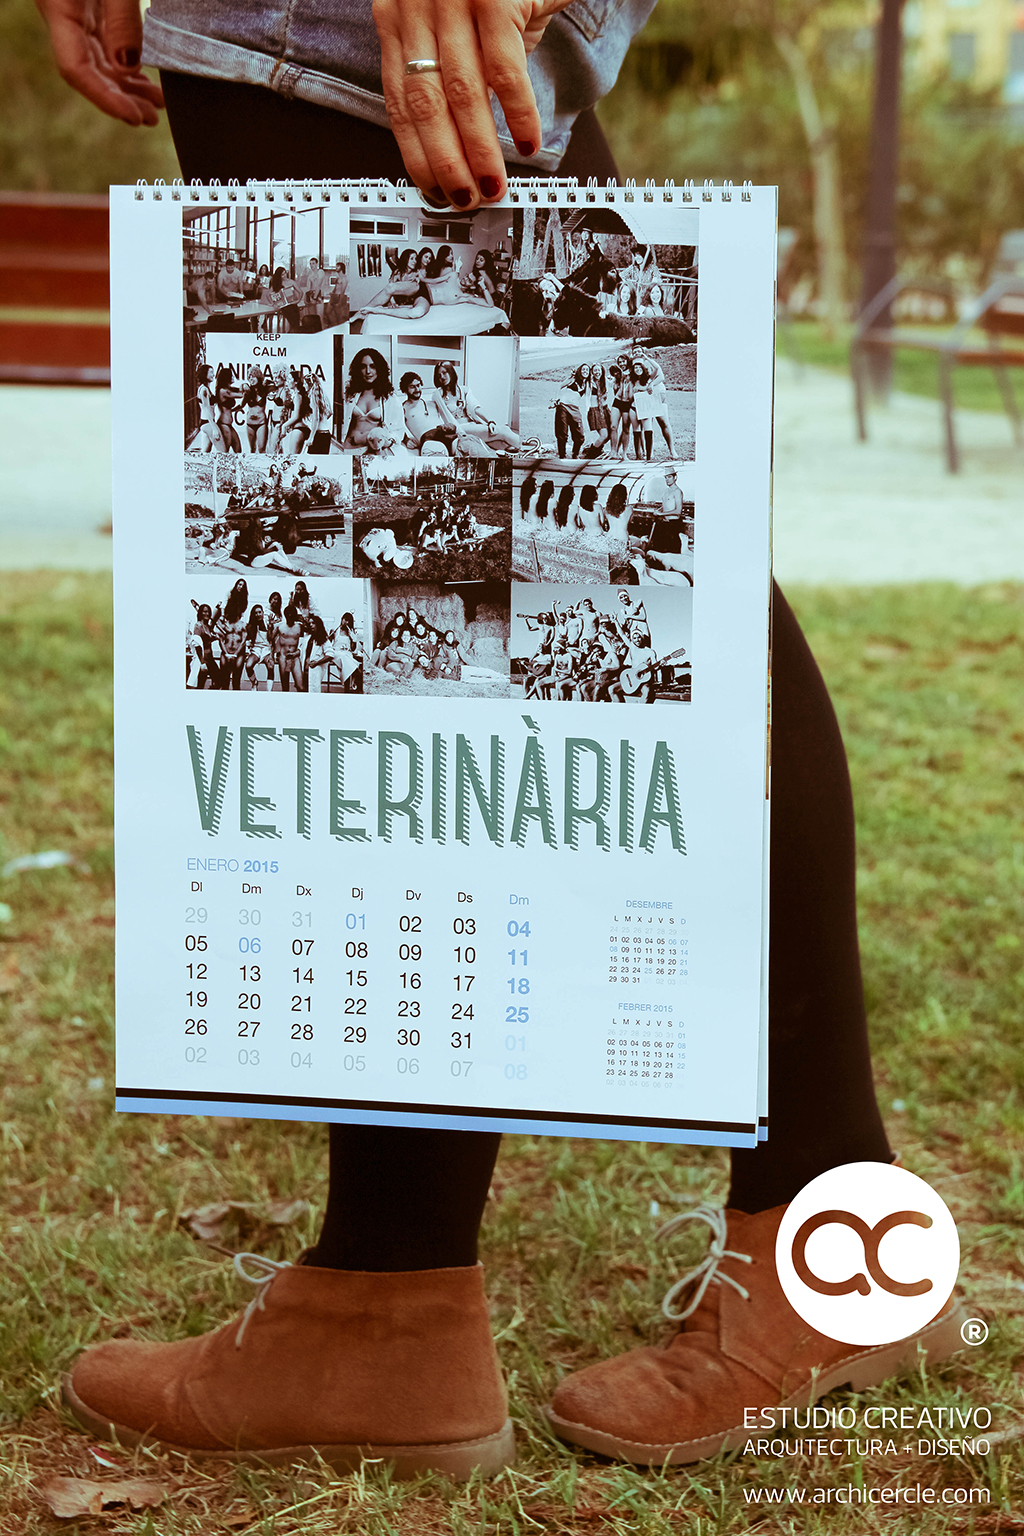 Calendario Uab.Facultad Veterinaria Uab Diseno Y Produccion Calendario Y